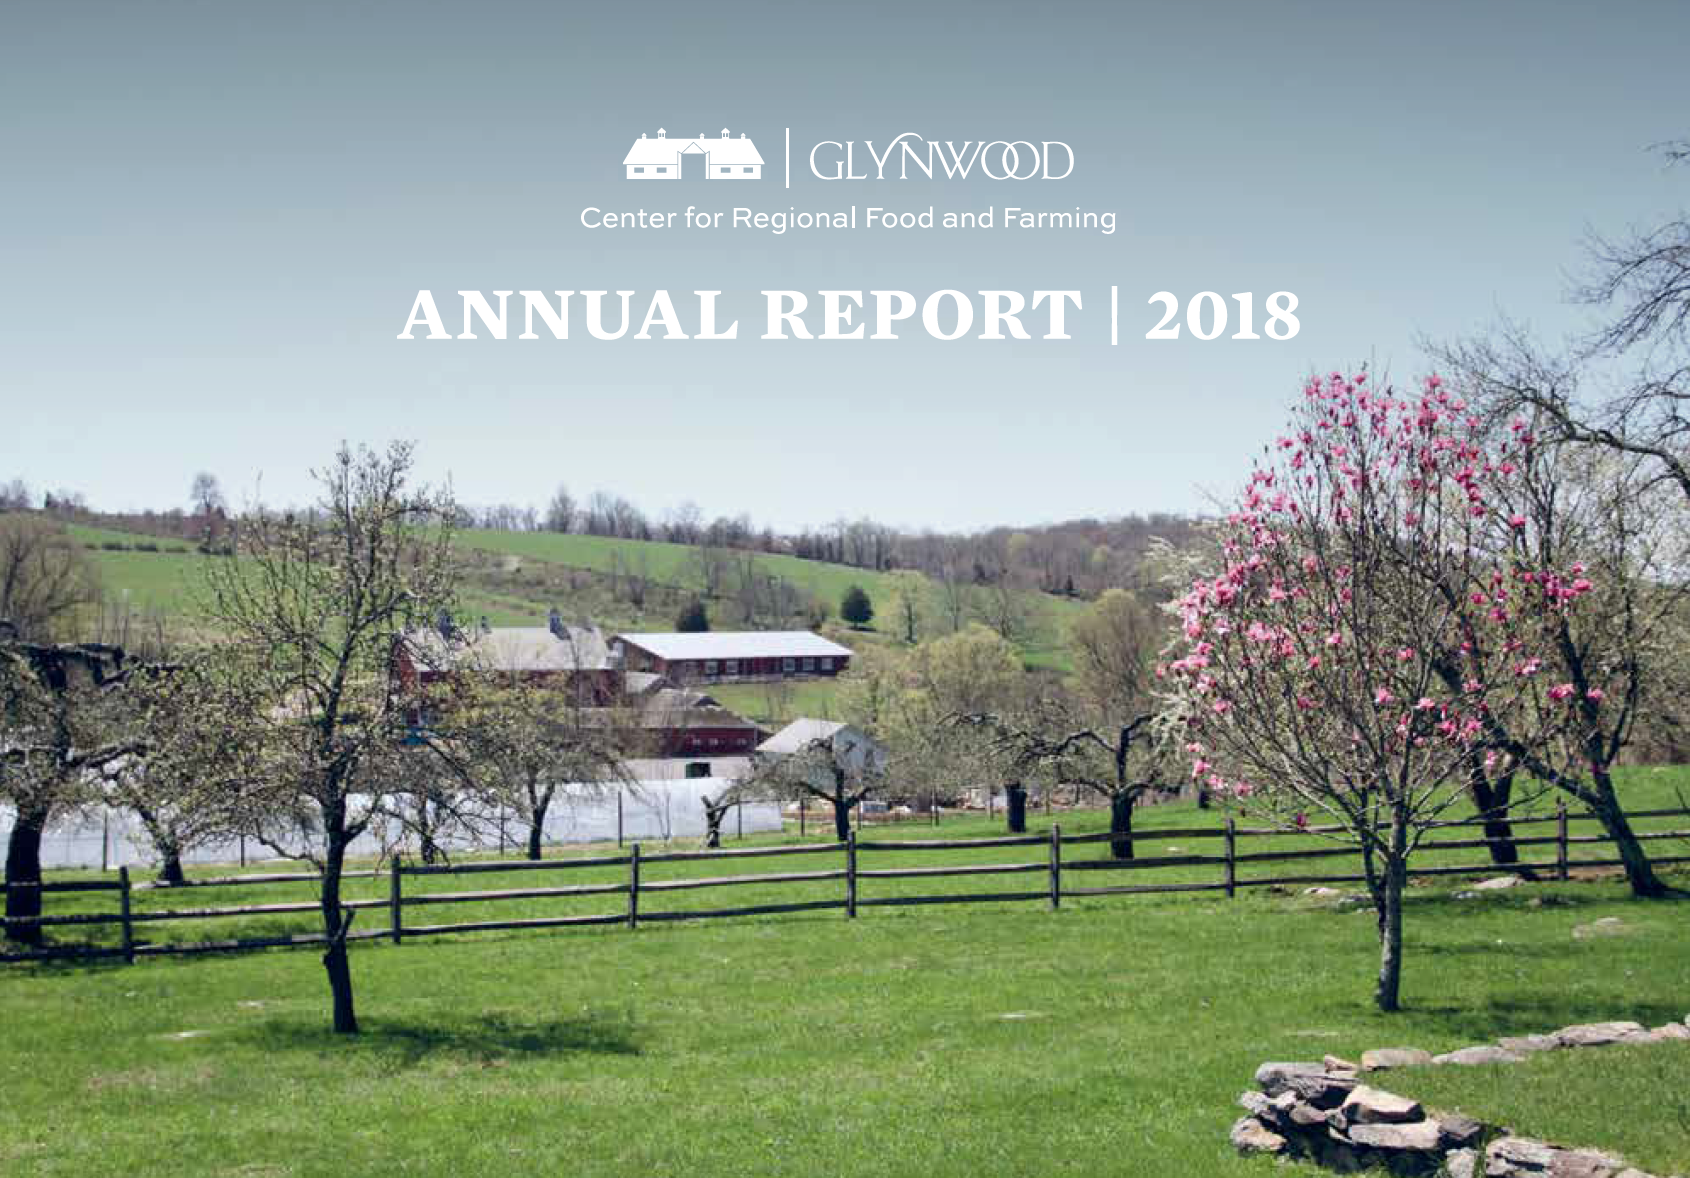 View Annual Report Here